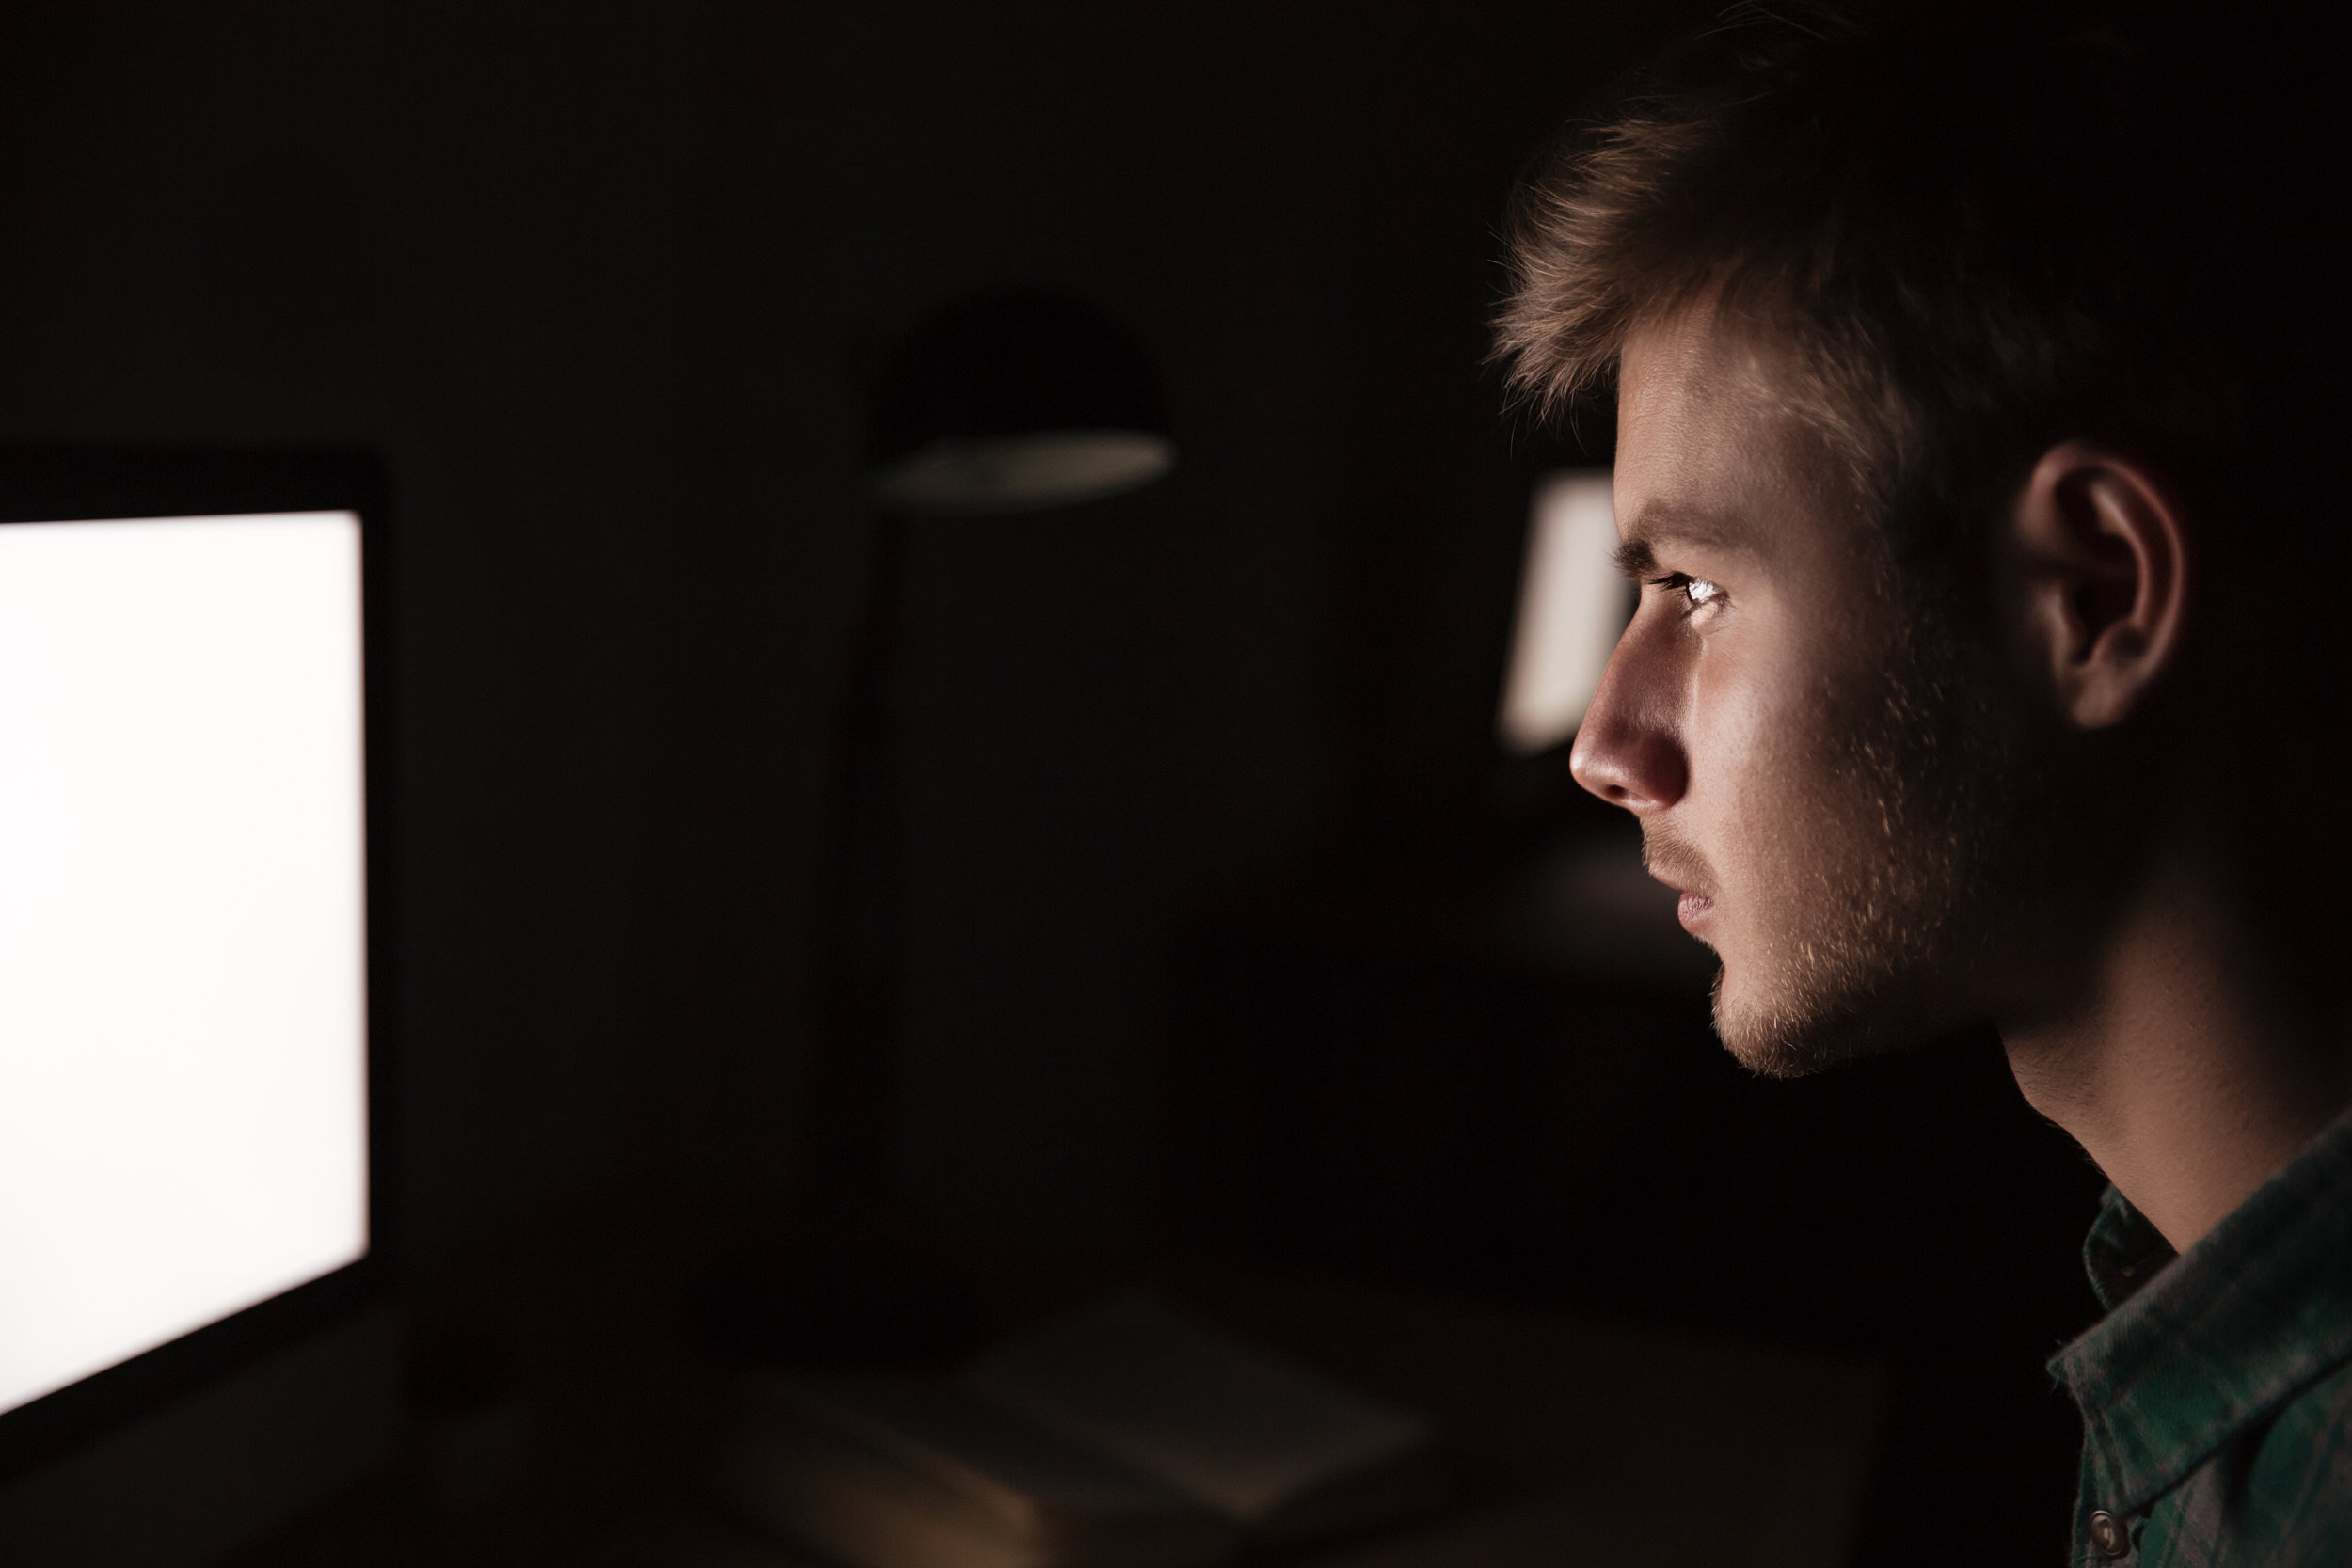 graphicstock-serious-young-man-using-blank-screen-computer-in-the-dark-room_rufB4qkvng.jpg